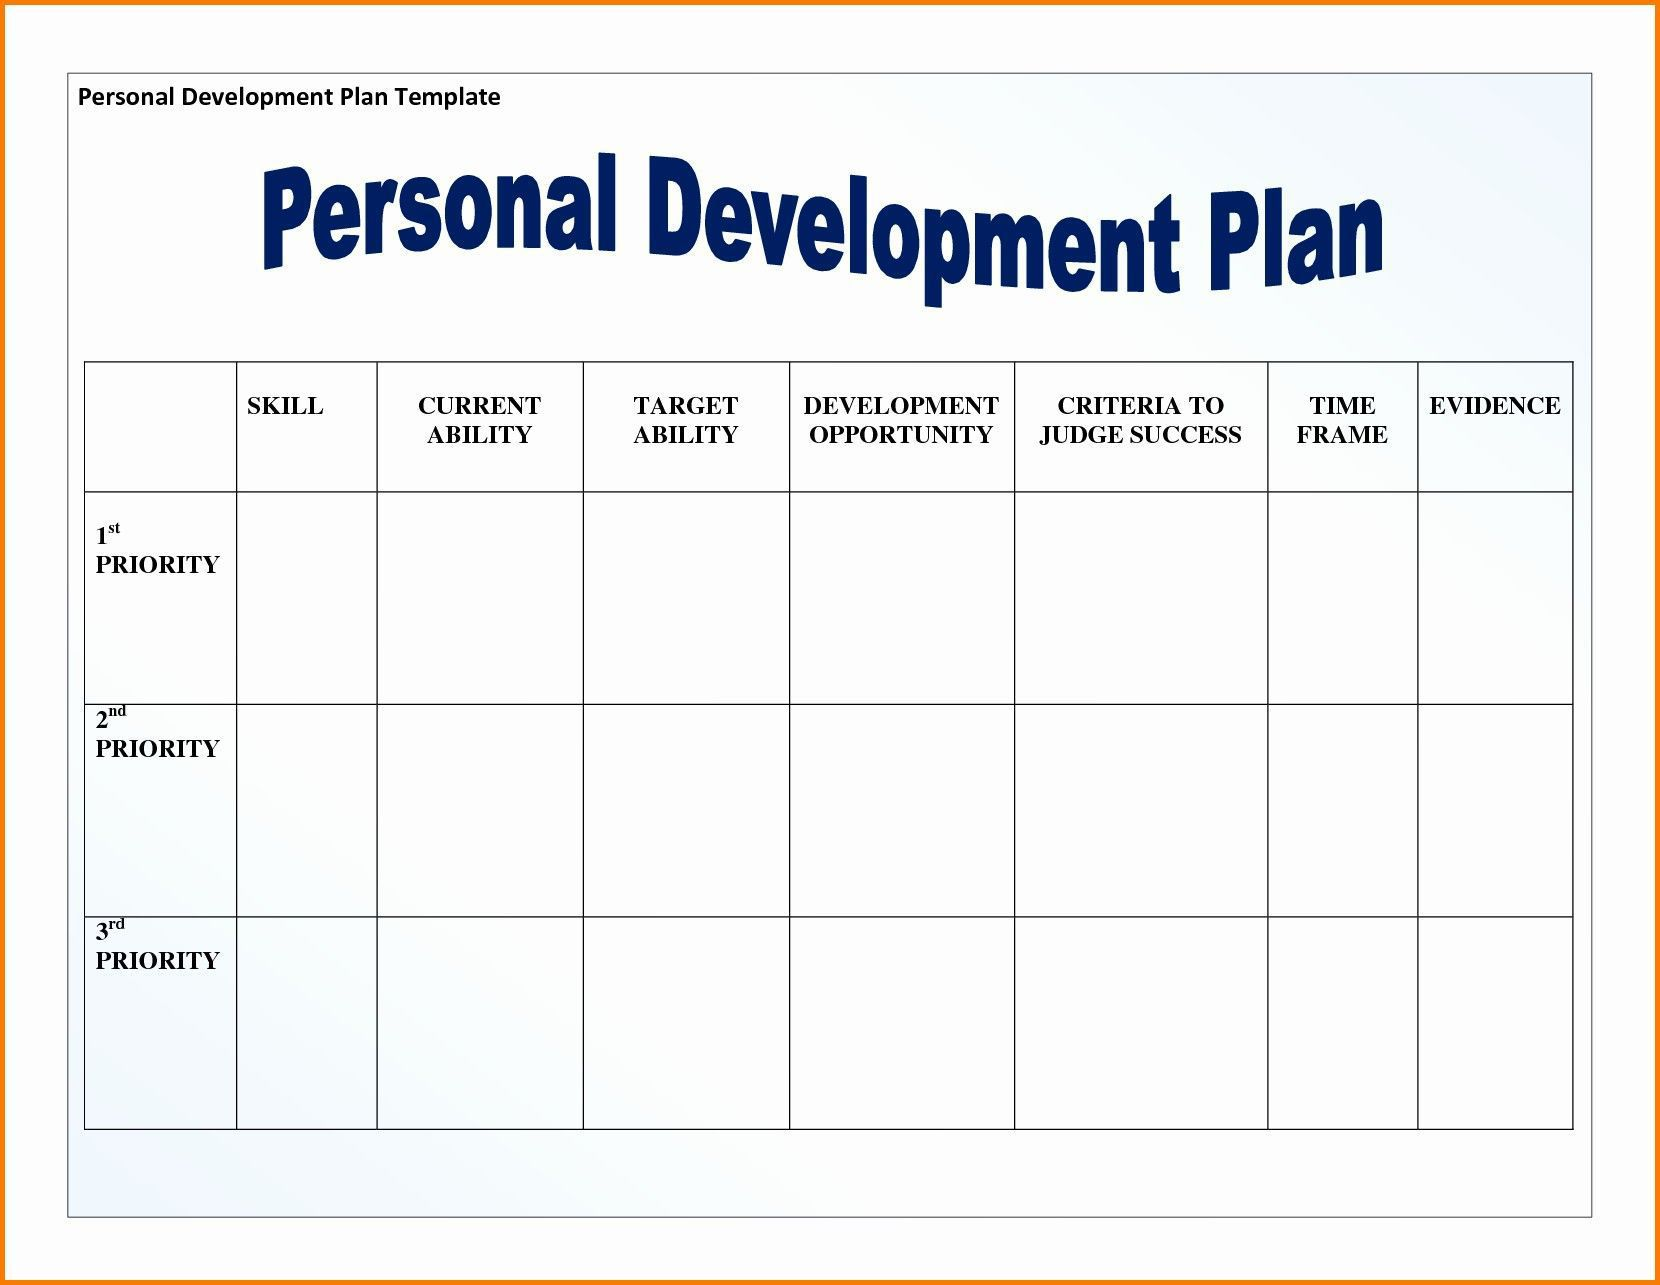 001 Formidable Personal Development Plan Template Pdf Photo  Sample For Student Leadership ExampleFull